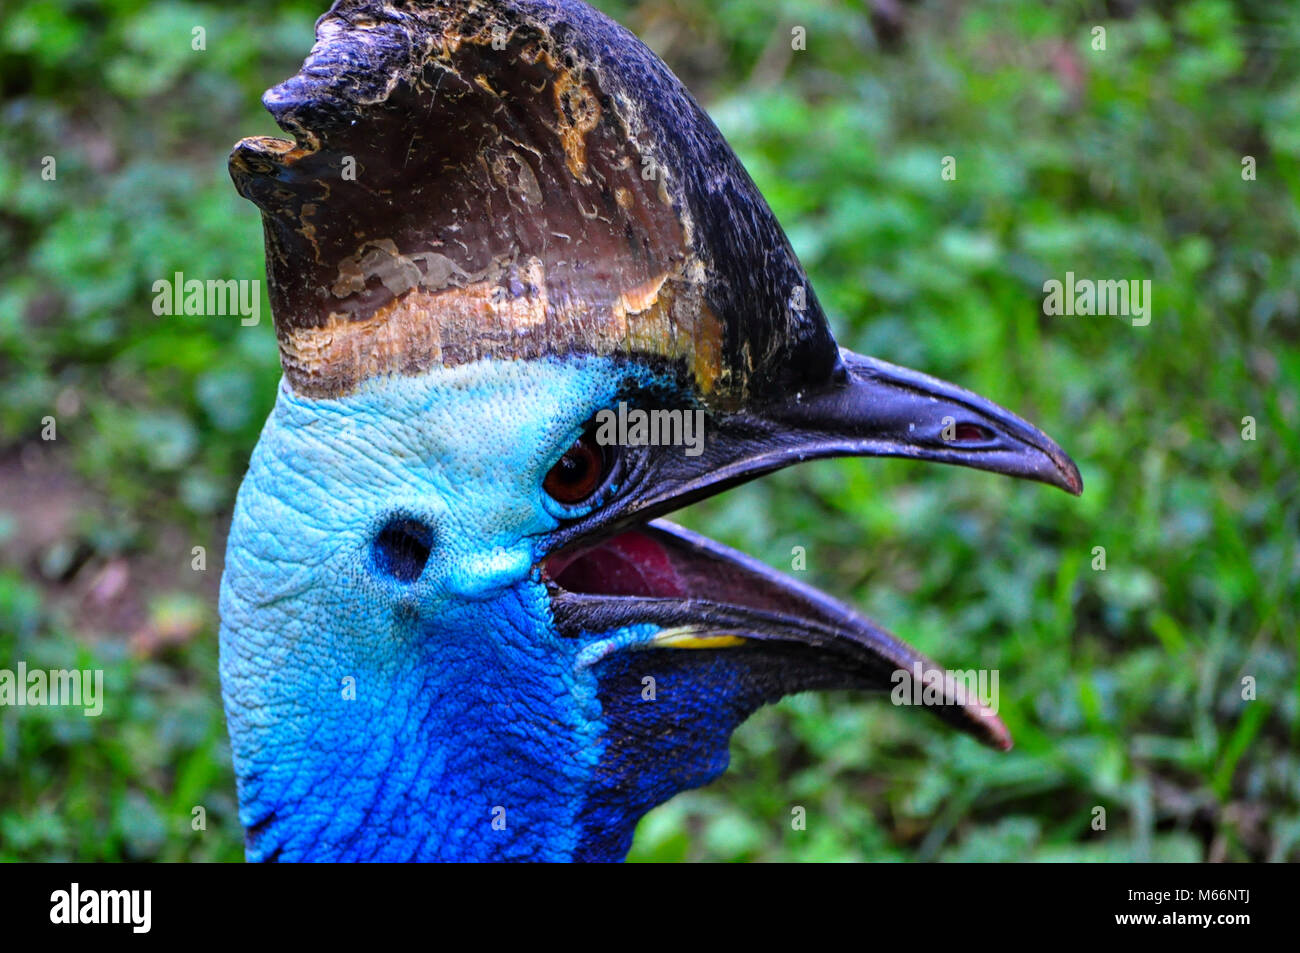 Nicht fliegen Cassowary Vogel bei den National Zoo in Washington DC Stockbild